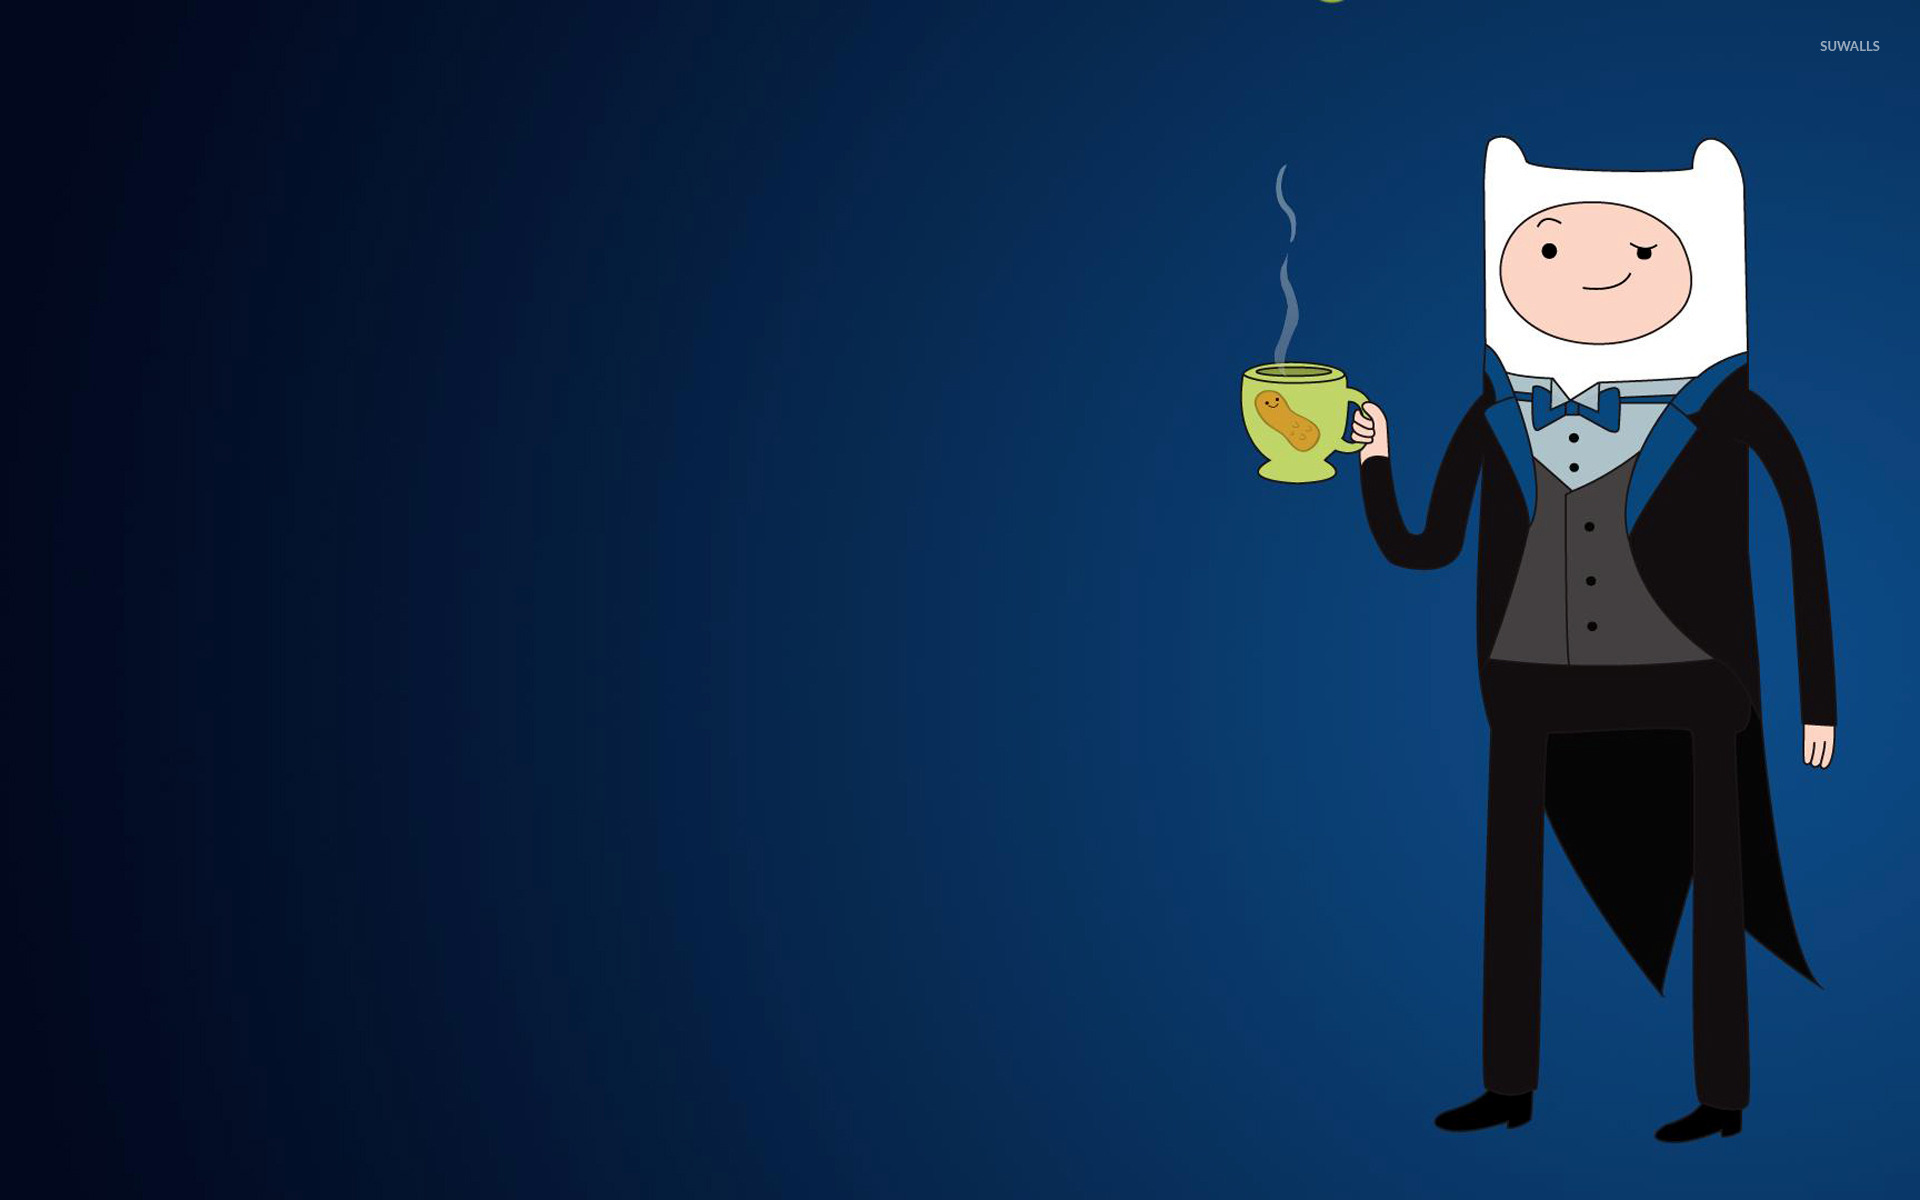 Tux finn adventure time wallpaper cartoon wallpapers 14616 tux finn adventure time wallpaper thecheapjerseys Choice Image